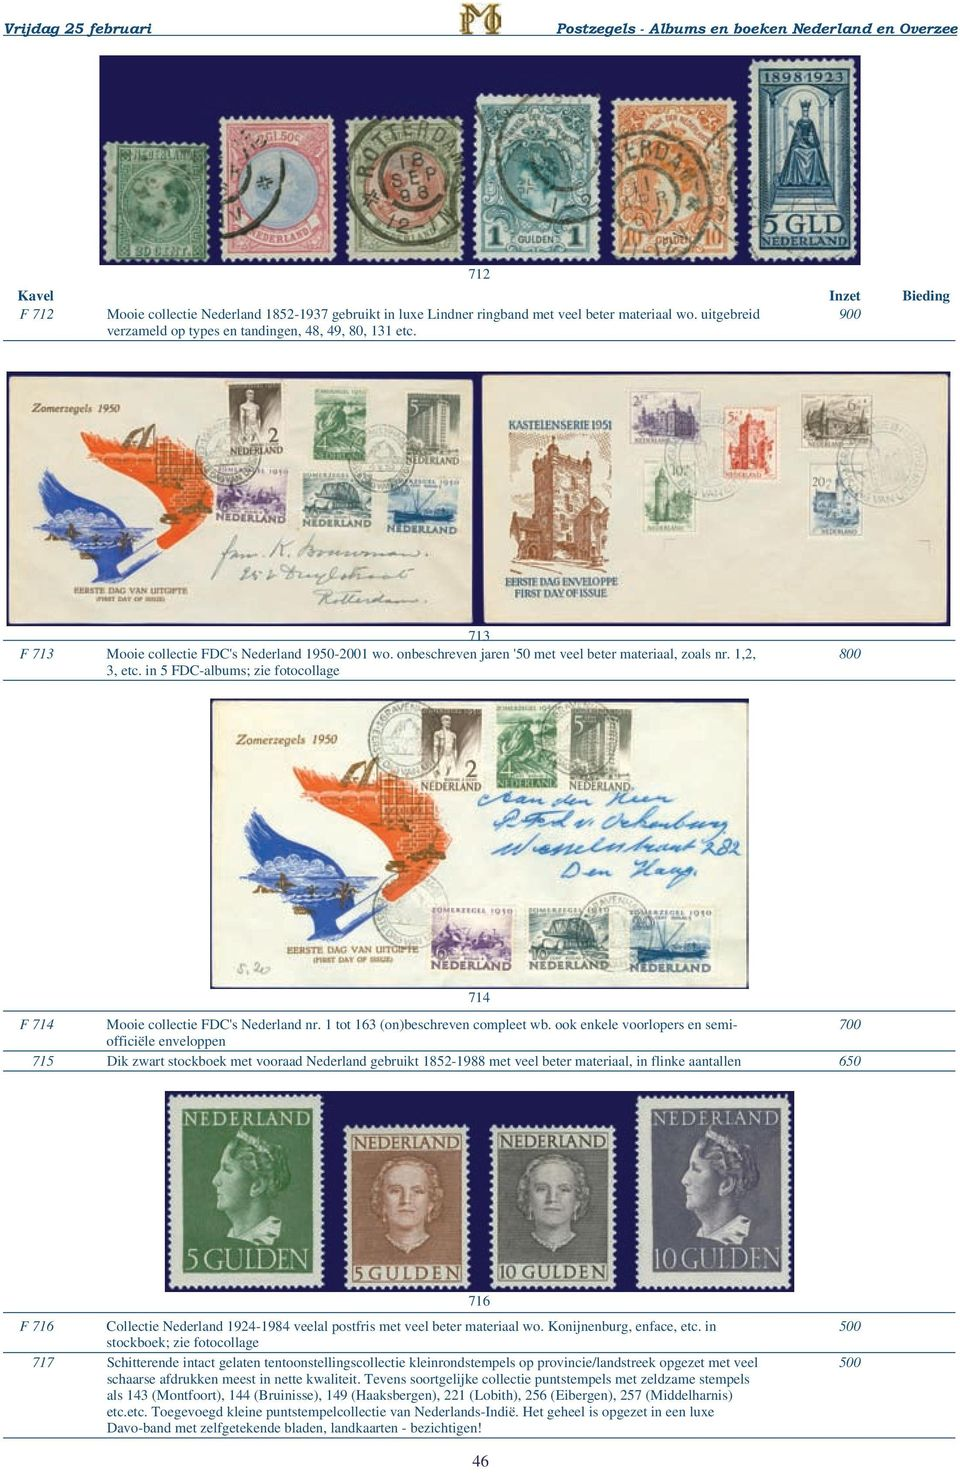 in 5 FDC-albums; zie fotocollage 800 714 F 714 Mooie collectie FDC's Nederland nr. 1 tot 163 (on)beschreven compleet wb.